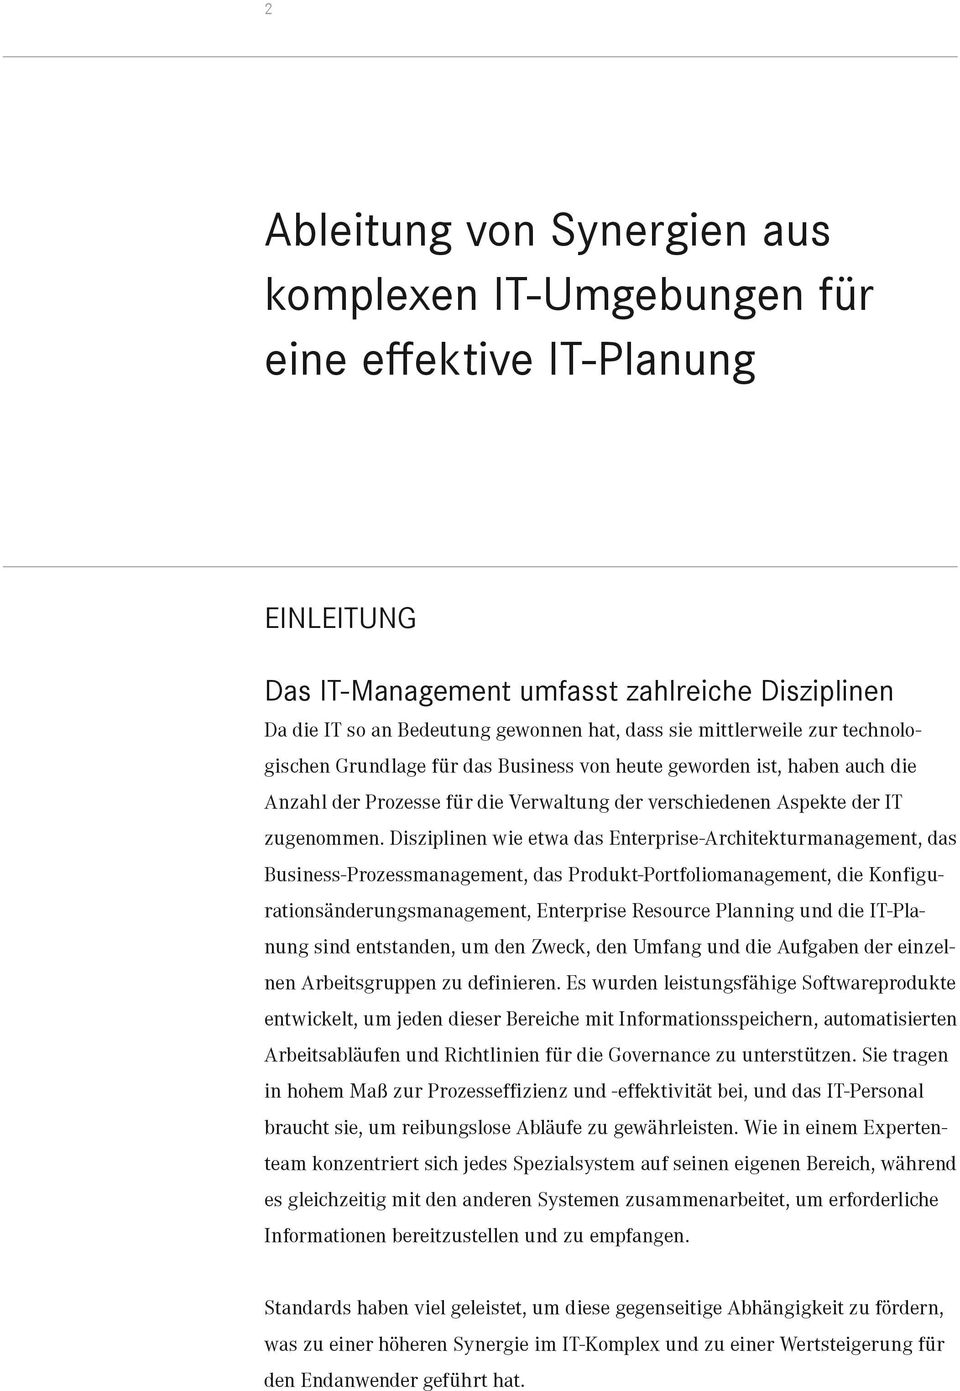 Disziplinen wie etwa das Enterprise-Architekturmanagement, das Business-Prozessmanagement, das Produkt-Portfoliomanagement, die Konfigurationsänderungsmanagement, Enterprise Resource Planning und die